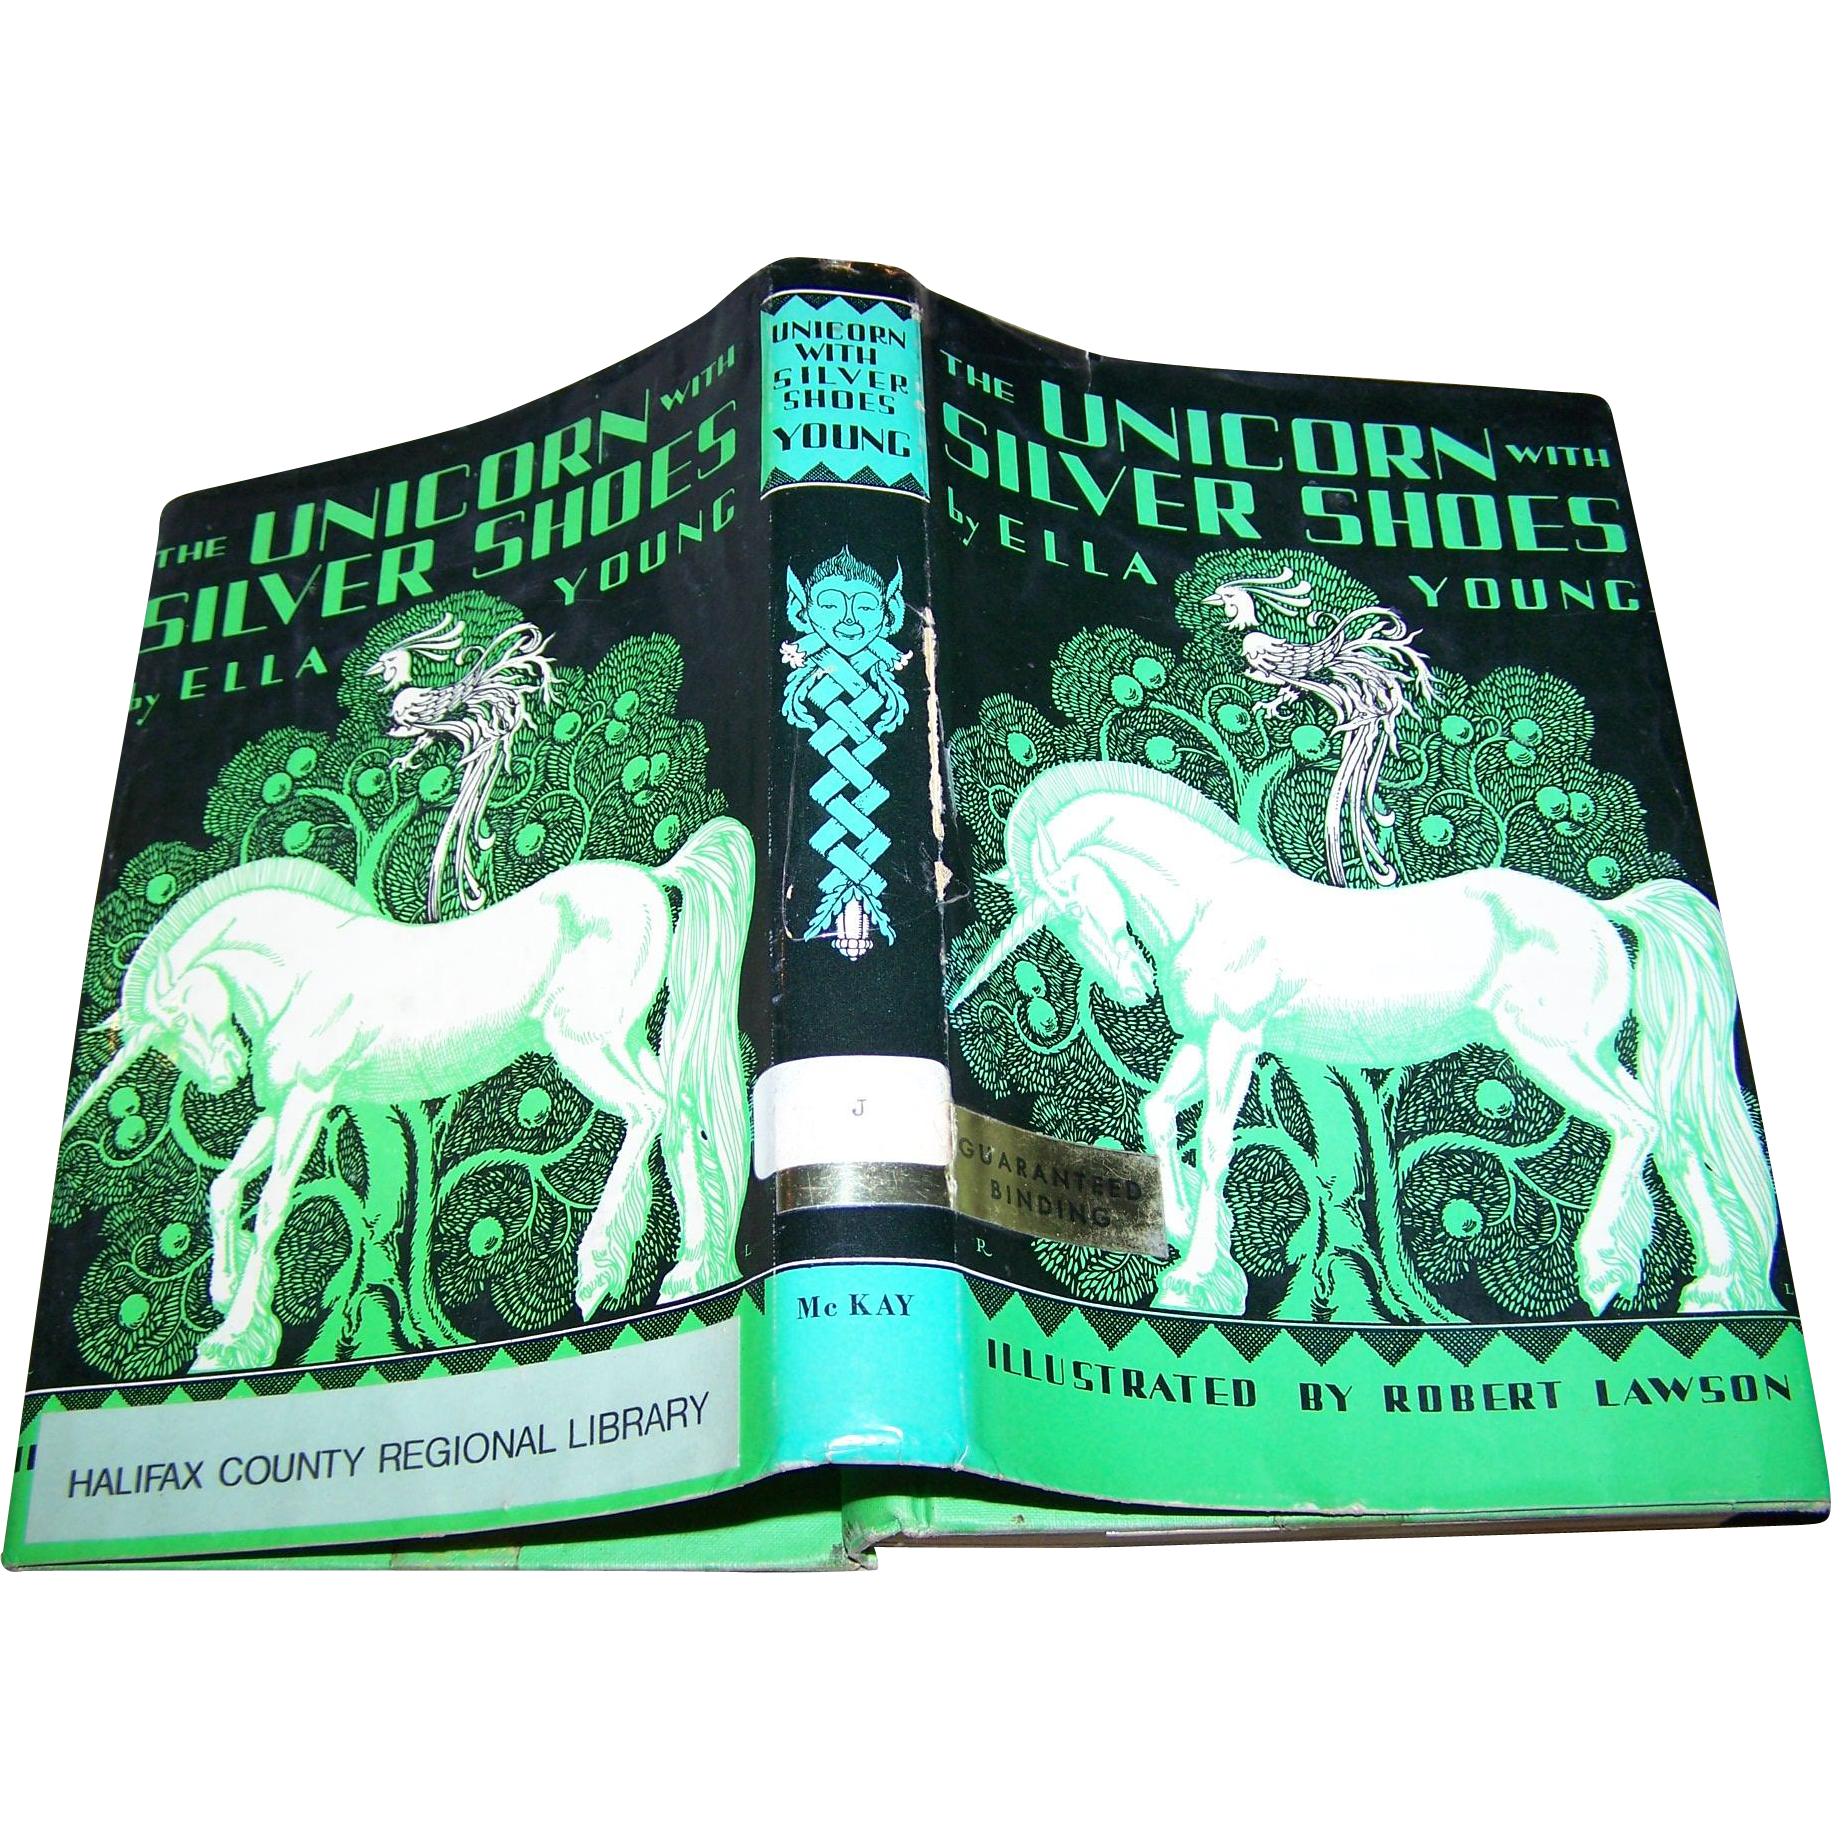 "This Ex Libra Hard Cover Book is Titled "" The Unicorn with Silver Shoes "" by Ella Young"